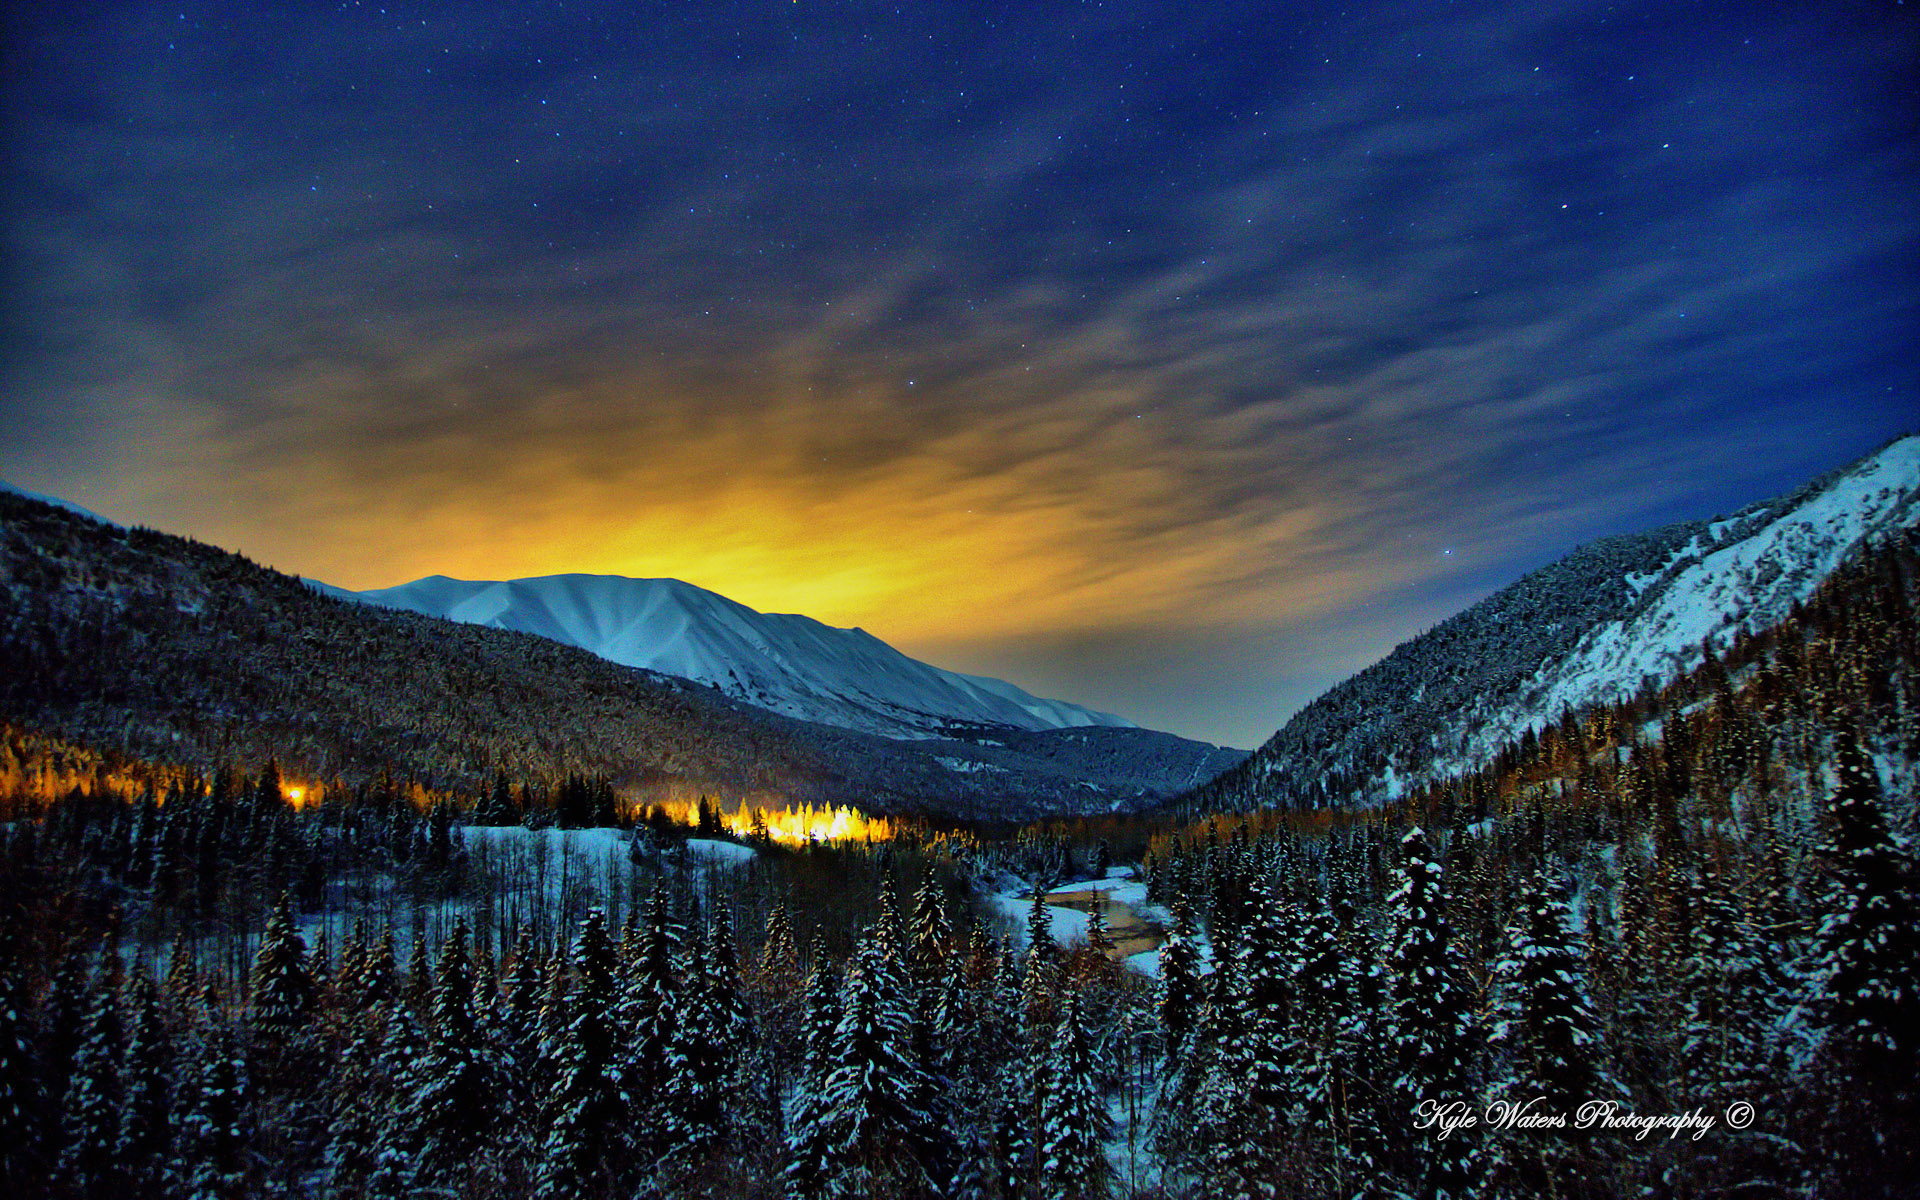 Hd Wallpapers Hd Backgrounds: Alaska Winter Nights Wallpapers